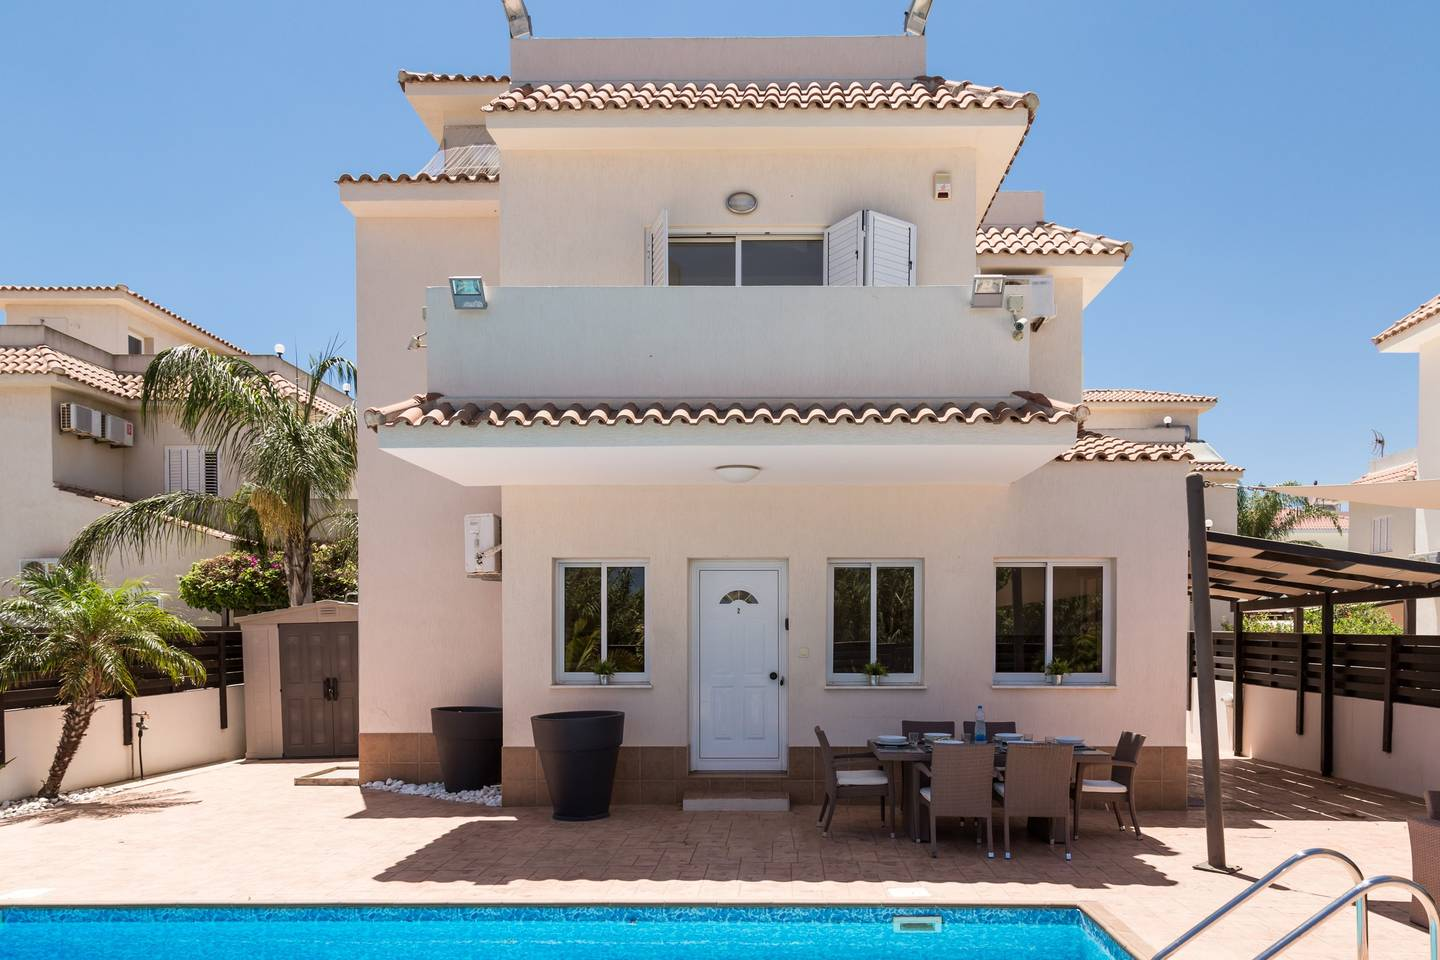 Apartment Villa Lucia - Luxurious 3 Bedroom Villa with Pool photo 23934512